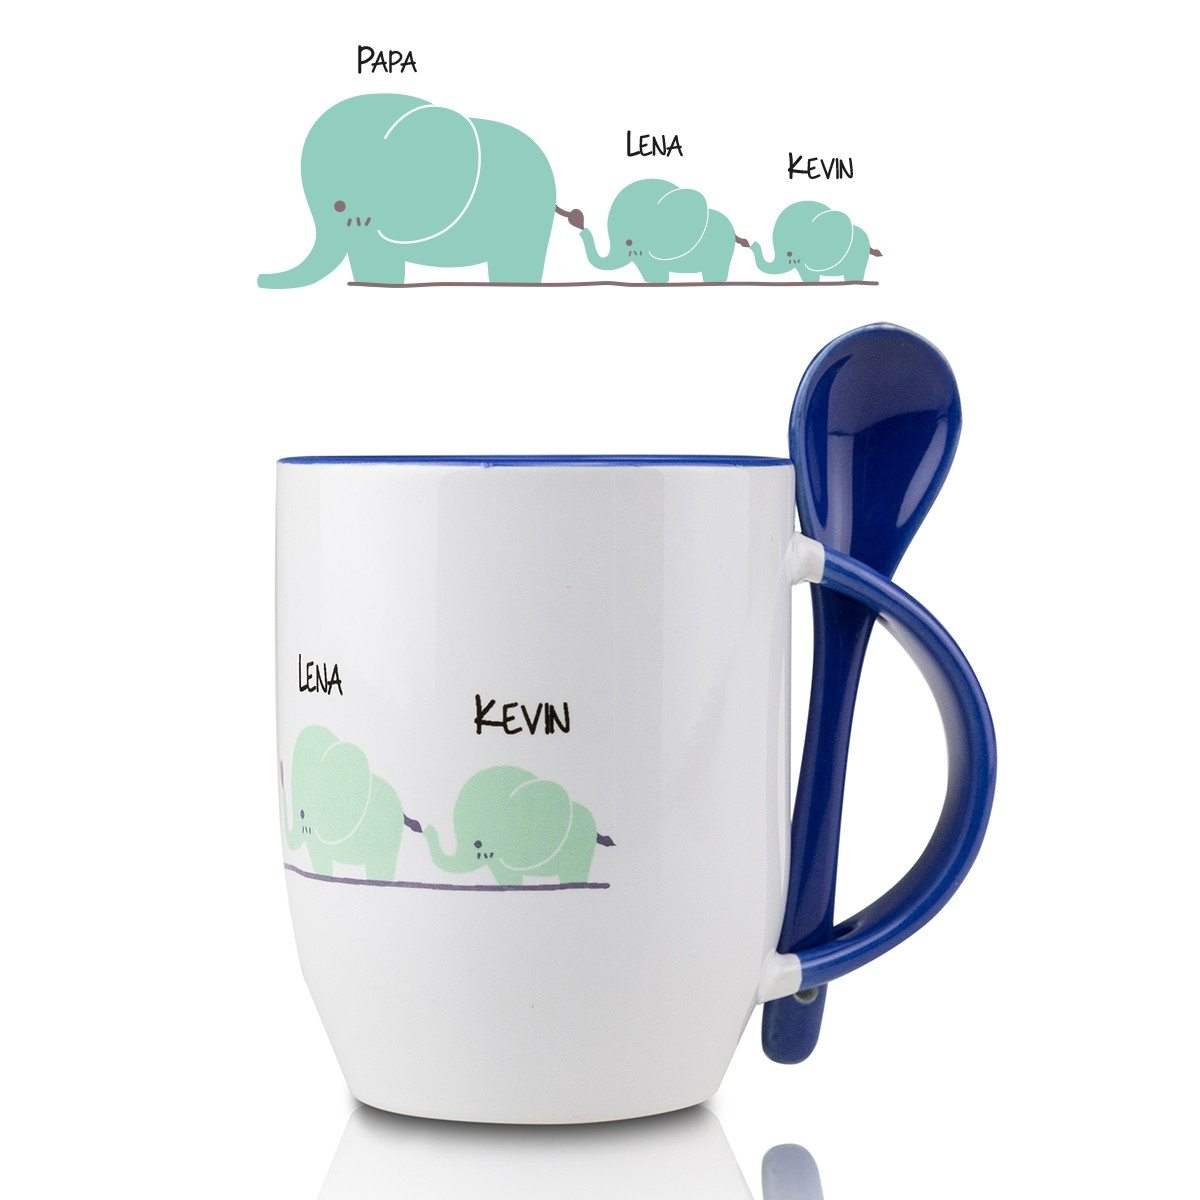 Tasse cuill re personnalis e el phants - Creation de tasse personnalisee ...